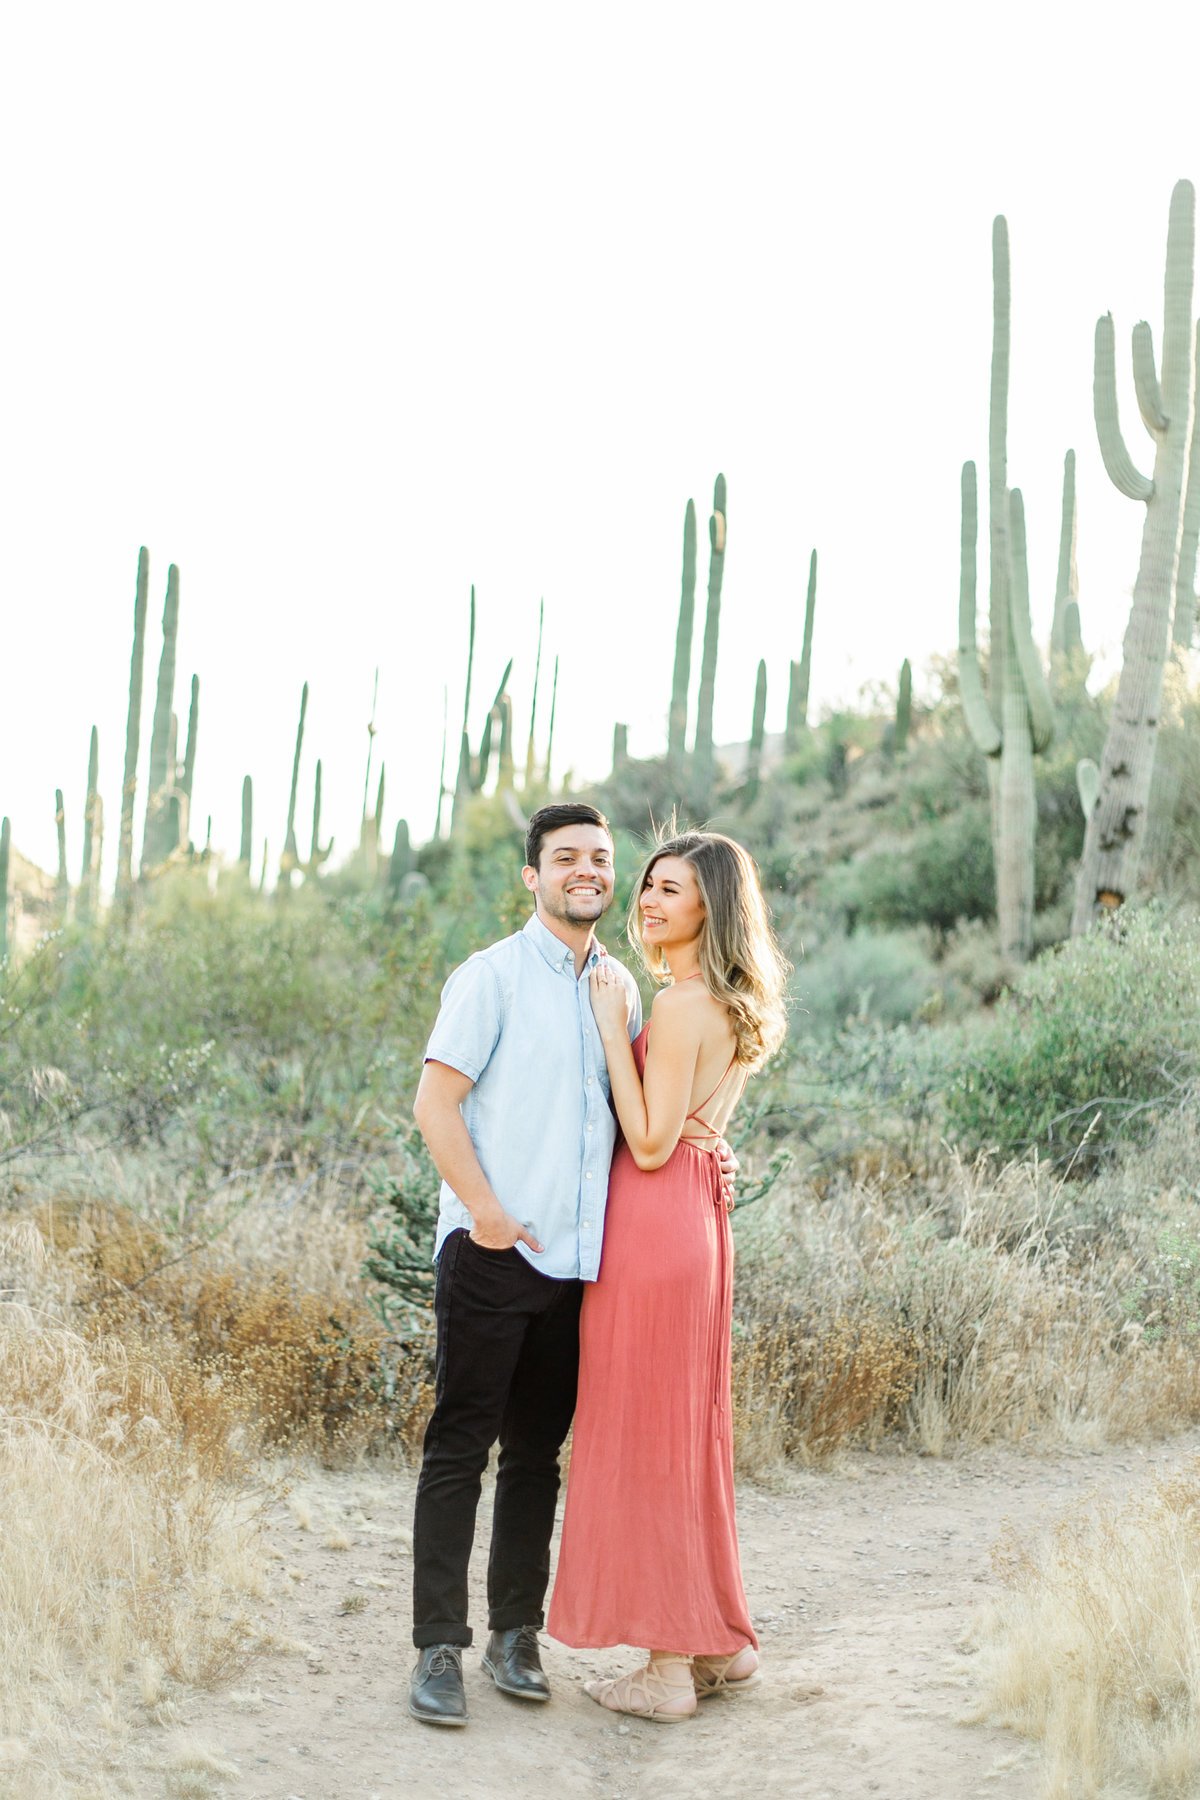 Karlie Colleen Photography - Arizona Desert Engagement - Brynne & Josh -90